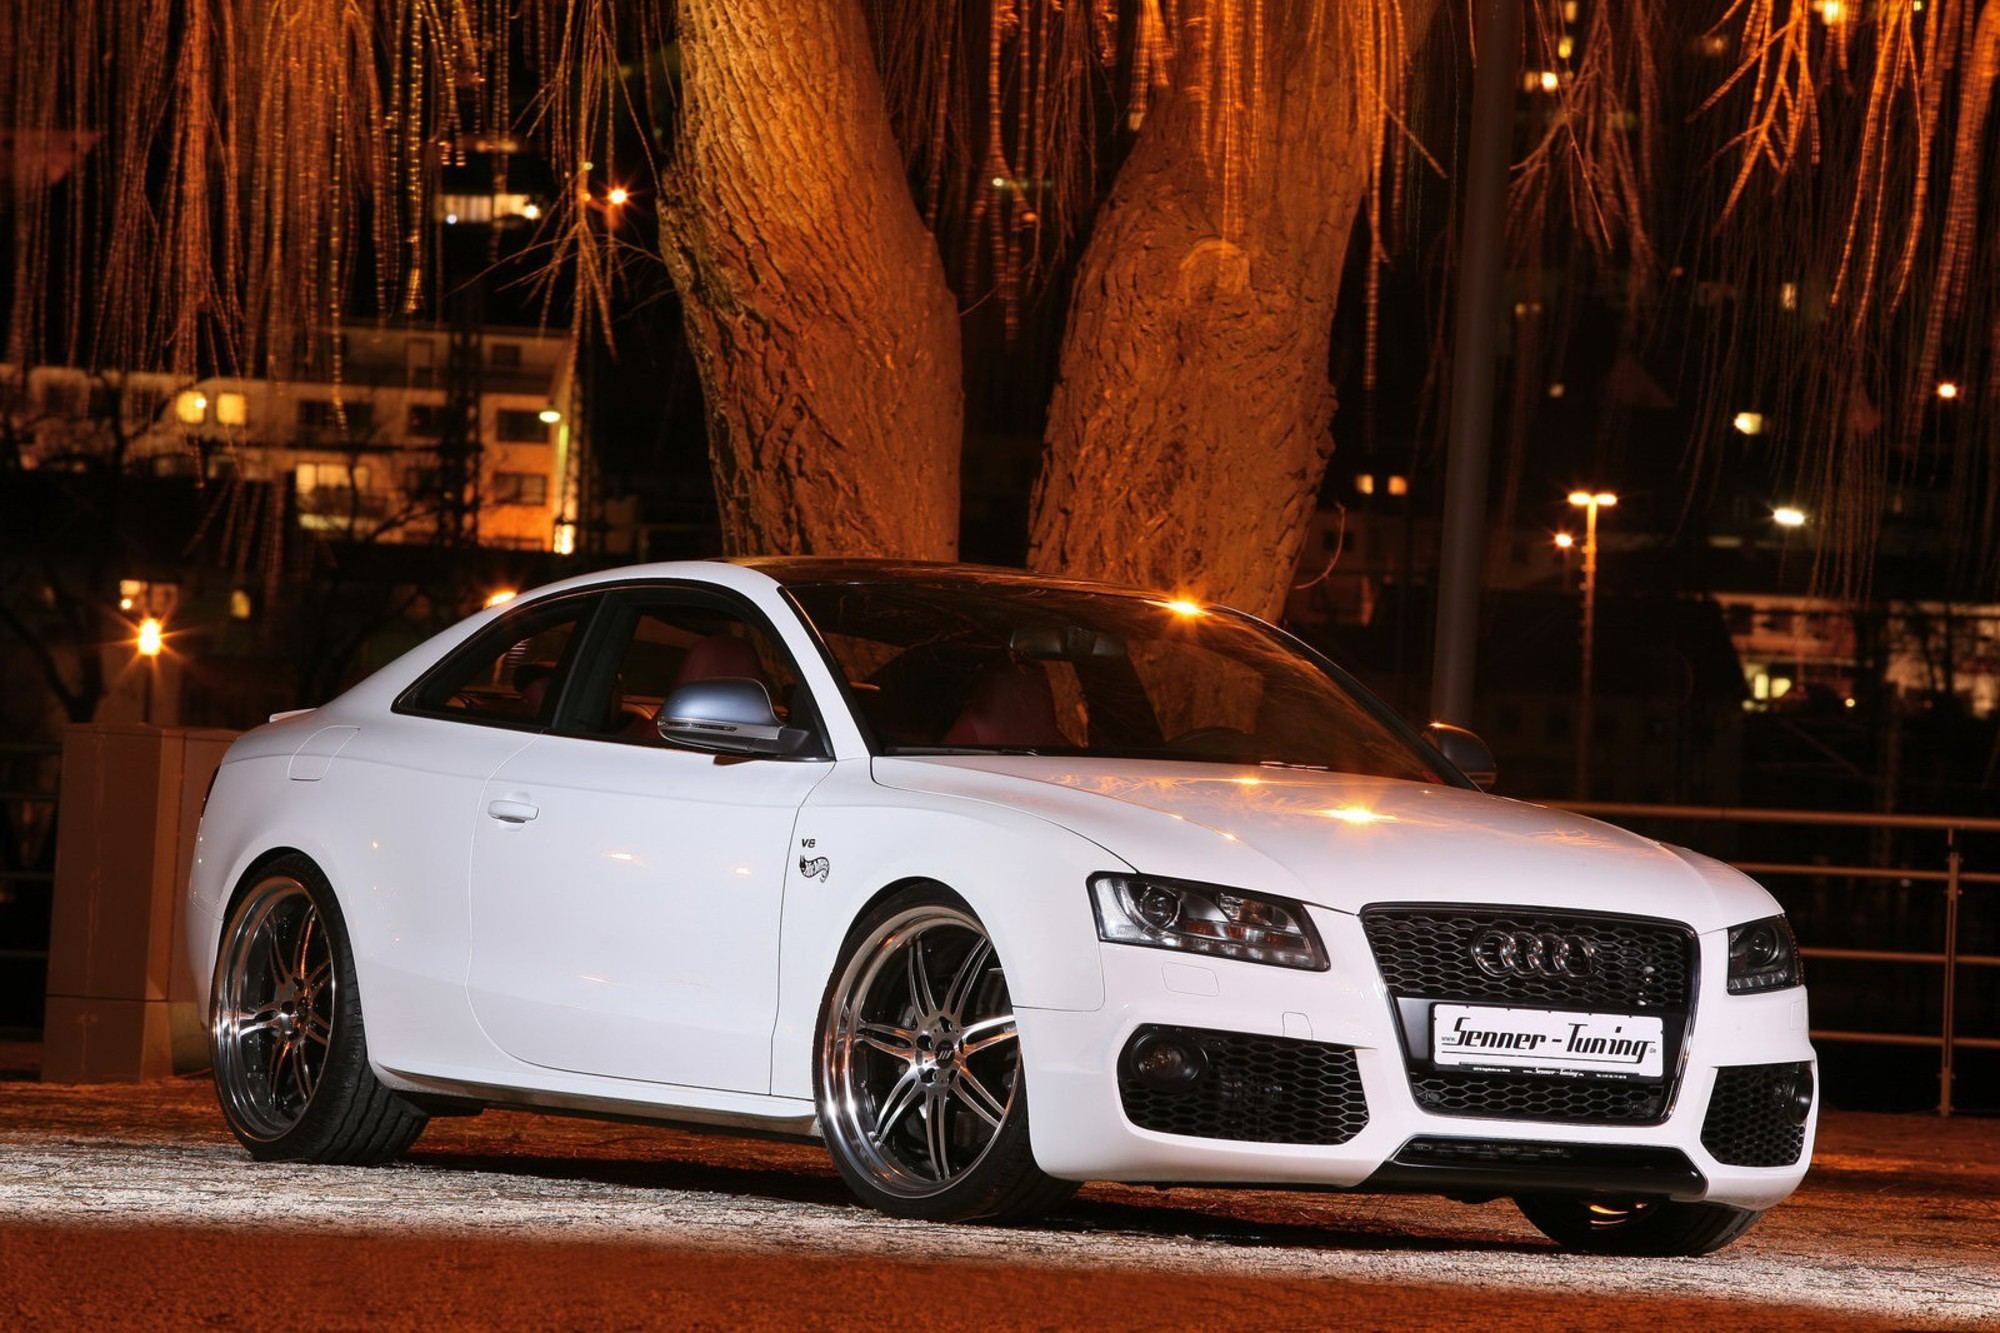 cars audi tuning white s5 wallpaper. Black Bedroom Furniture Sets. Home Design Ideas